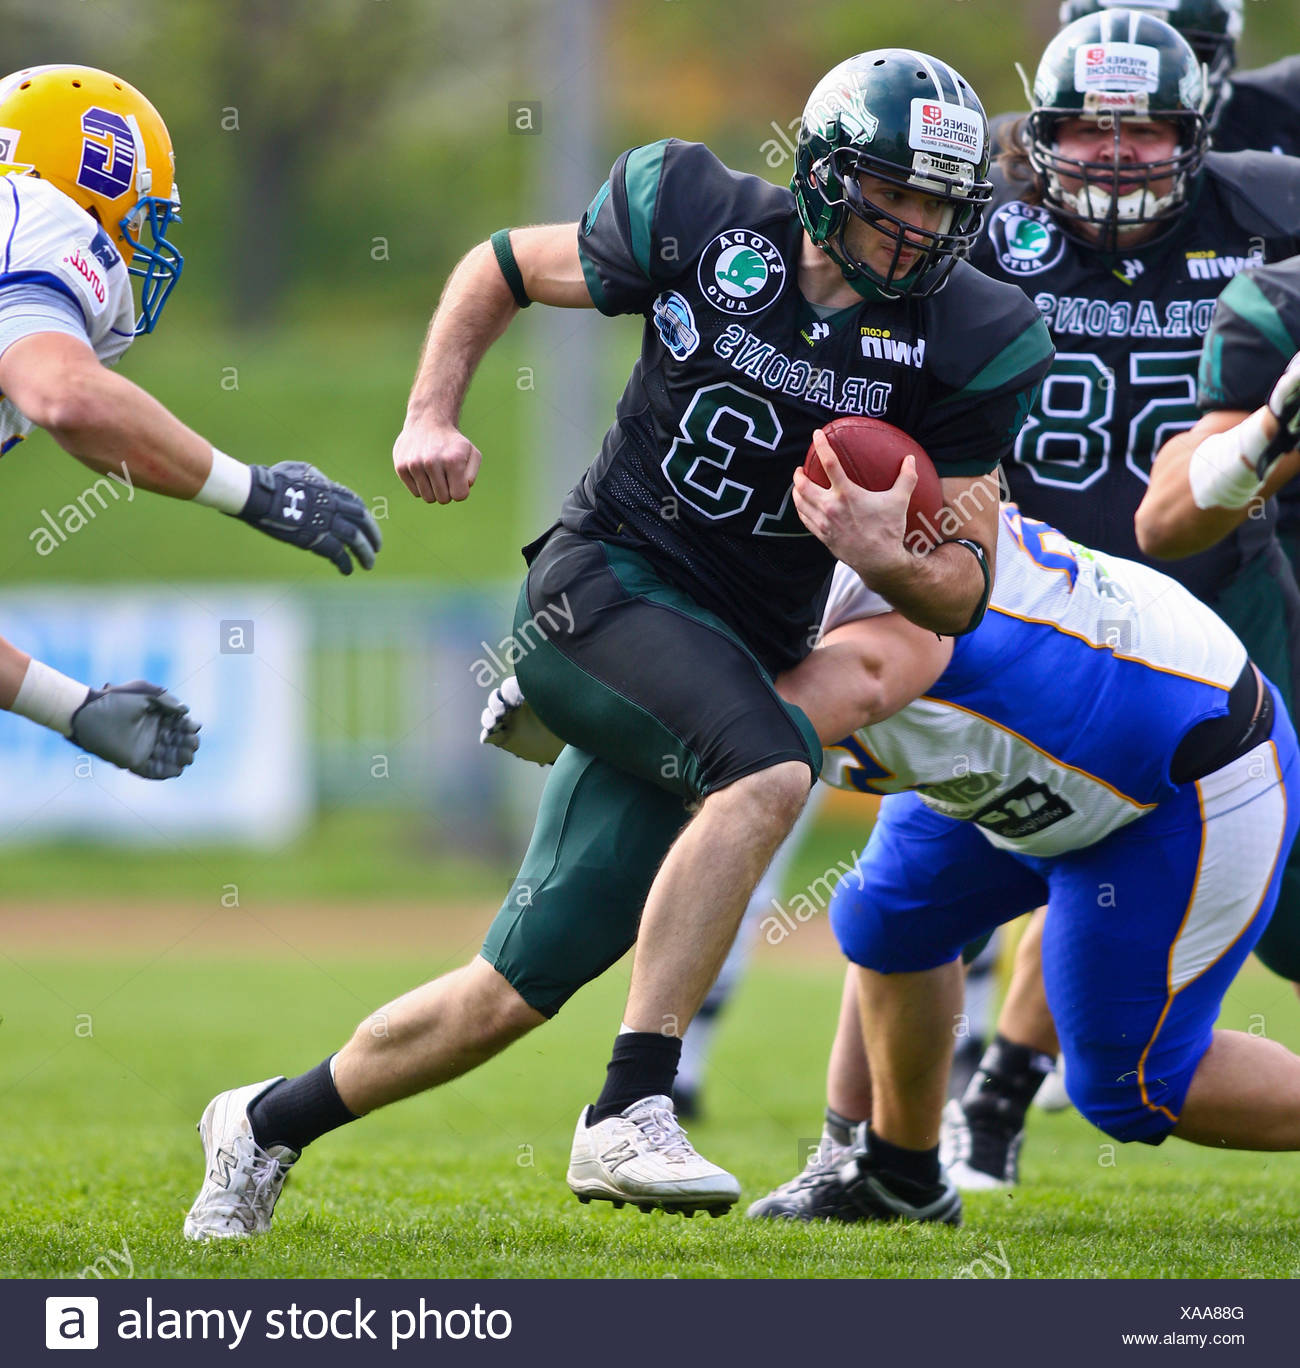 American Football, QB Thomas Haider, No. 13 of the Dragons, running with the ball; the Graz Giants win the game against the - Stock Image